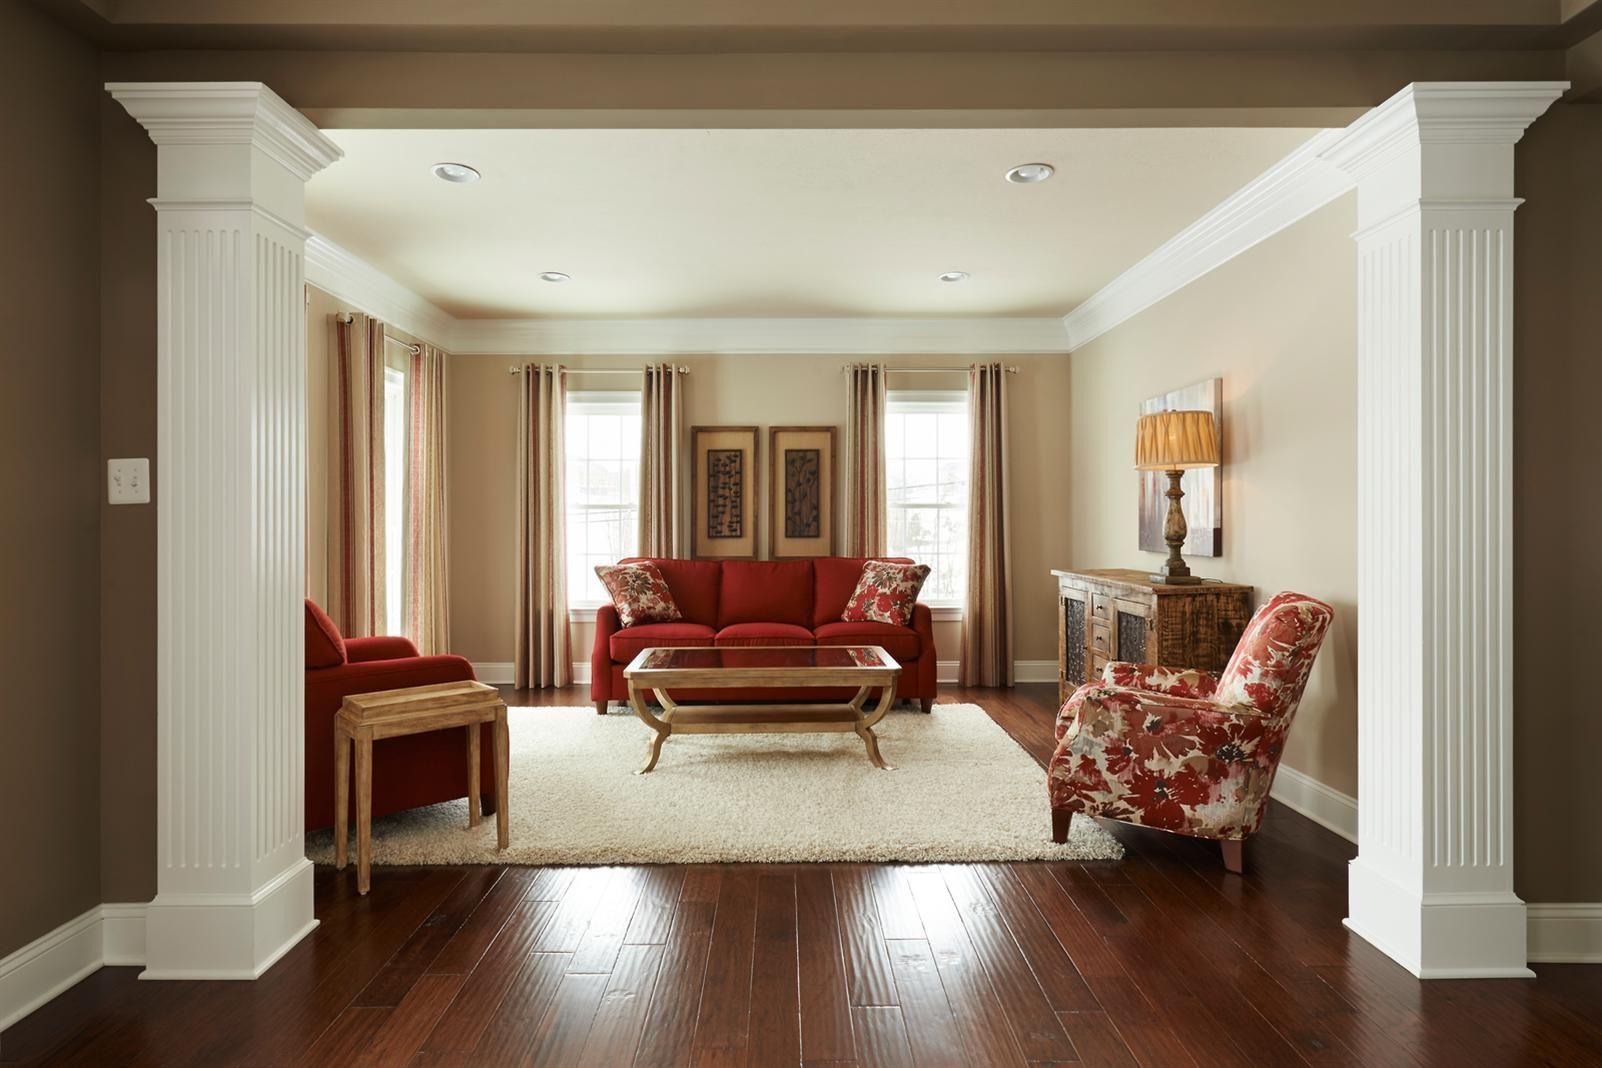 Model homes furniture maryland